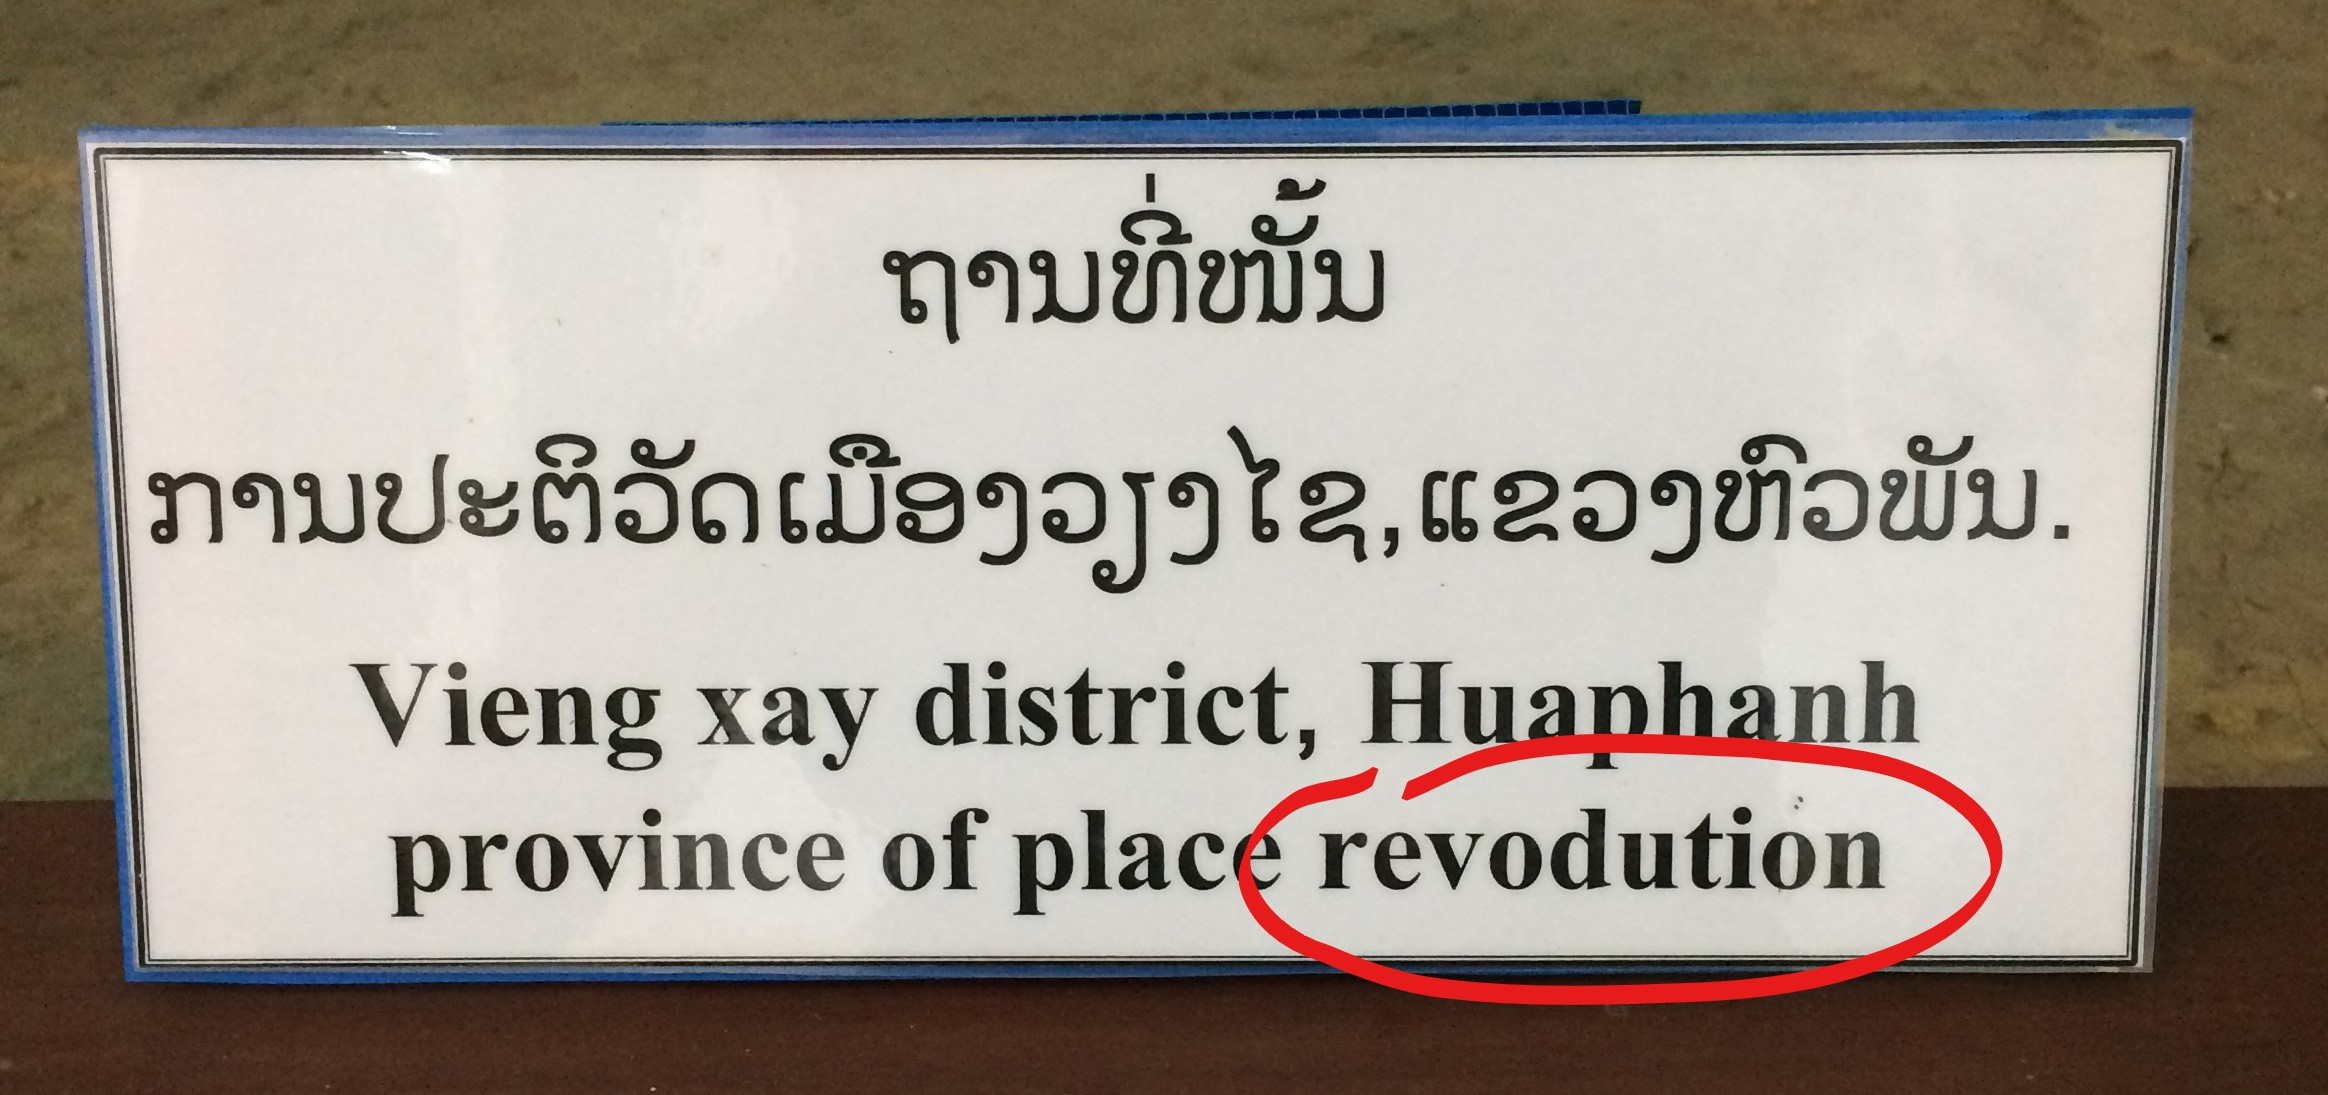 More fun with English spelling at the National Museum in Vientiane. Vientiane, Laos.